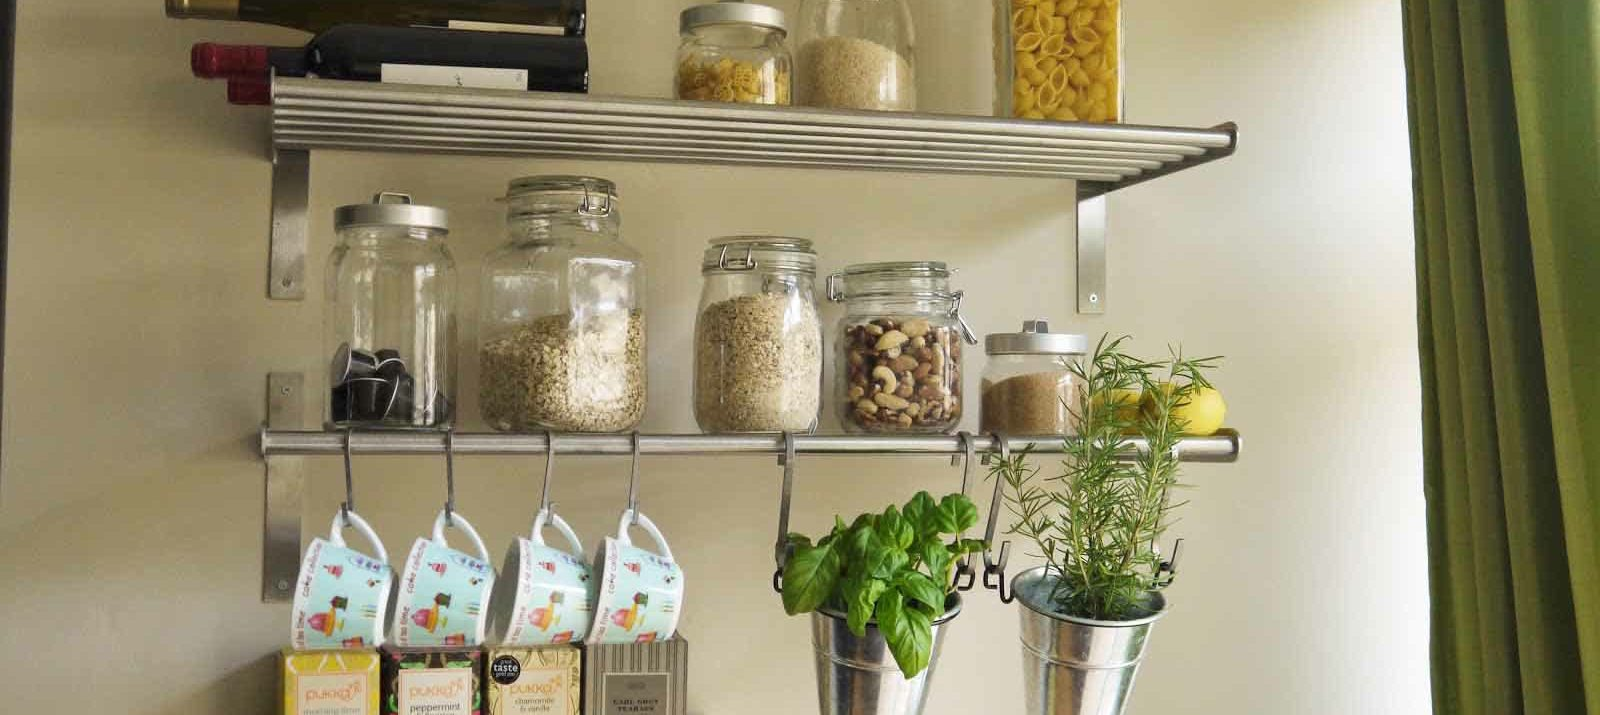 11 clever and easy kitchen organization ideas youll love - Kitchen Organization Ideas